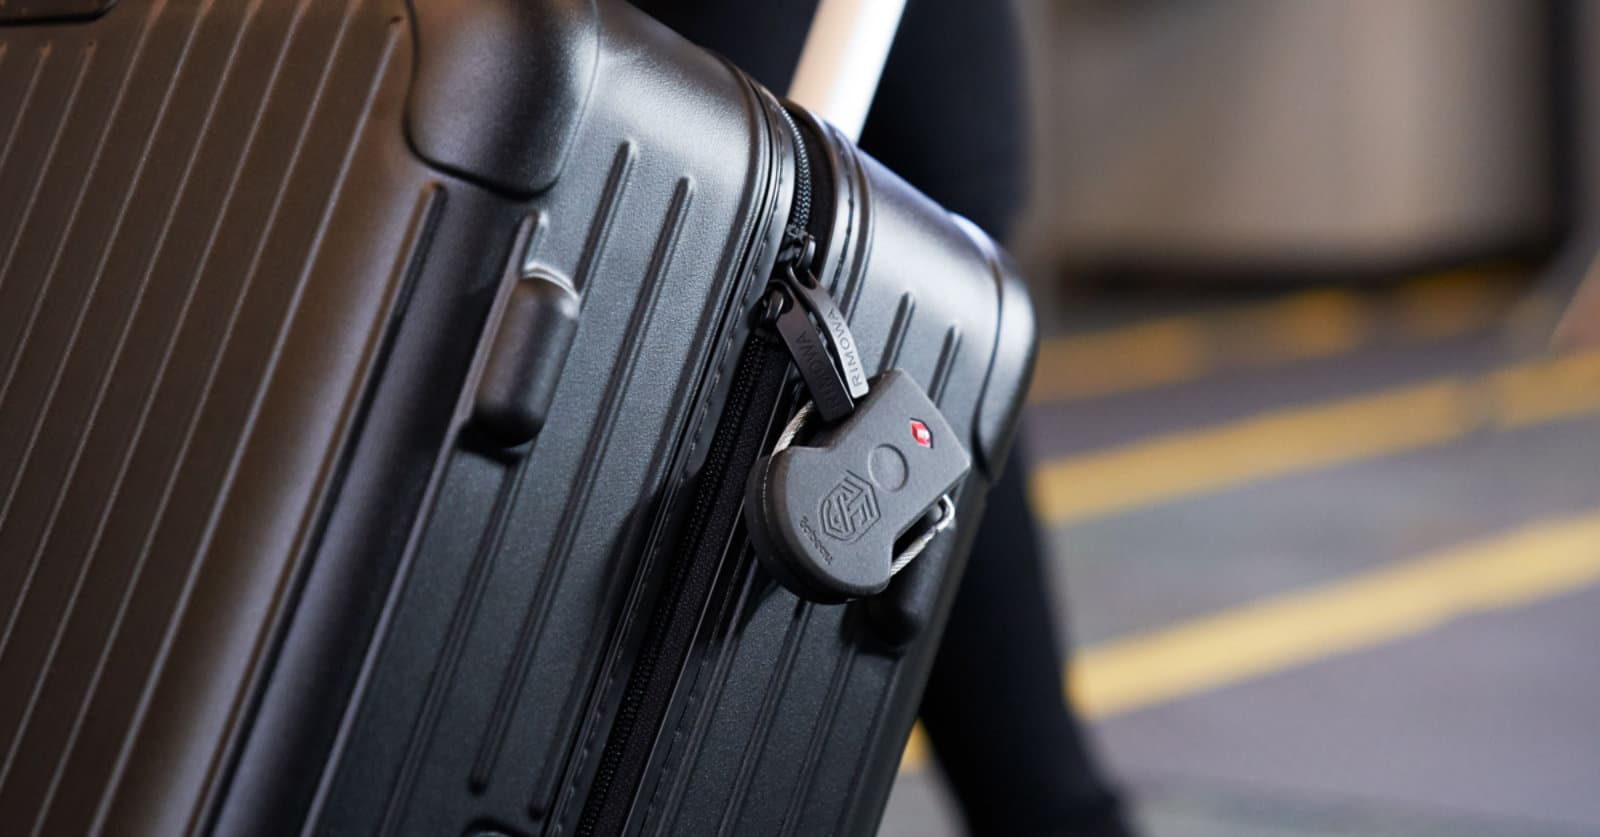 track and shield device installed on a suitcase